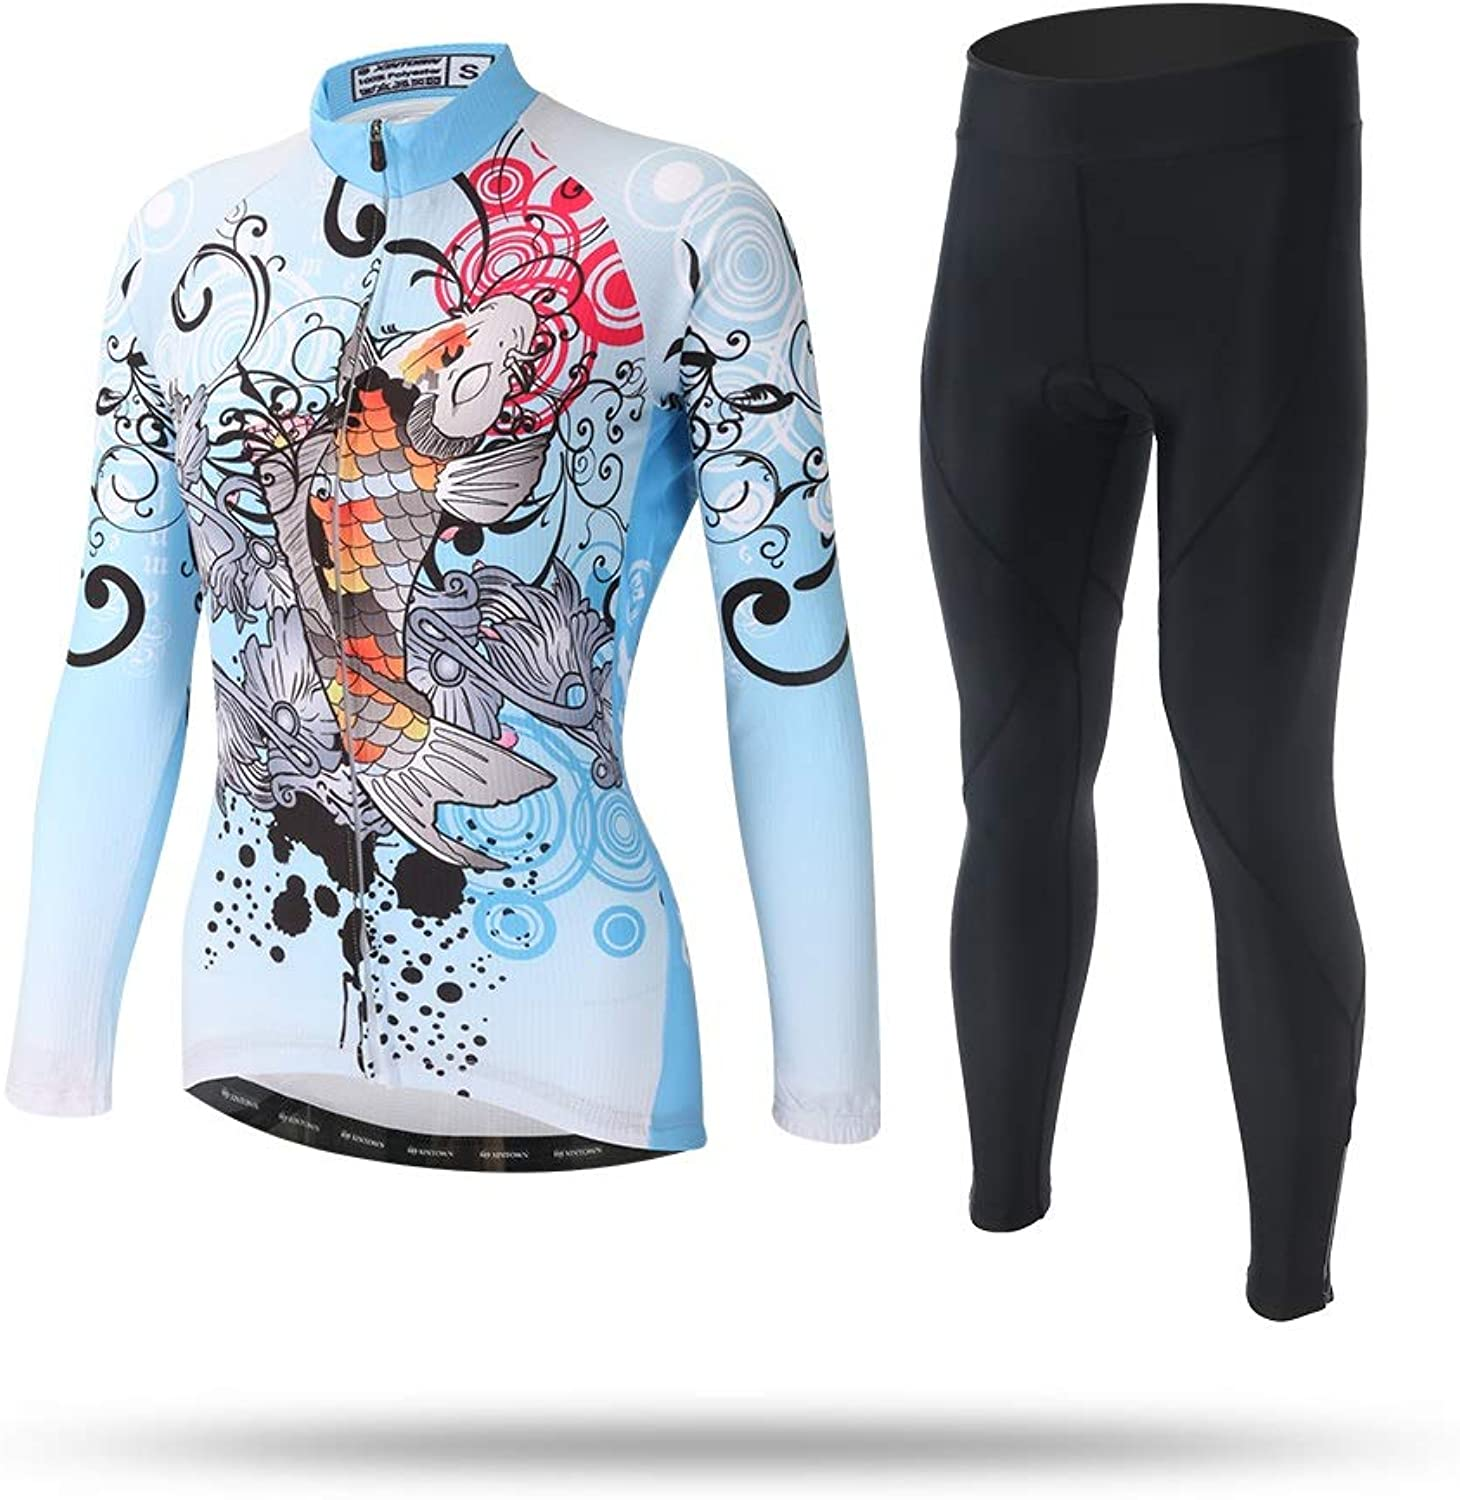 Classic Woman Bike Jersey Summer Road MTB Cycling for Women Breathable Quick Dry New Fabric Women's QuickDrying Jerseys Long Sleeve Jacket Sets bluee Koi Cycling Equipment Maillot